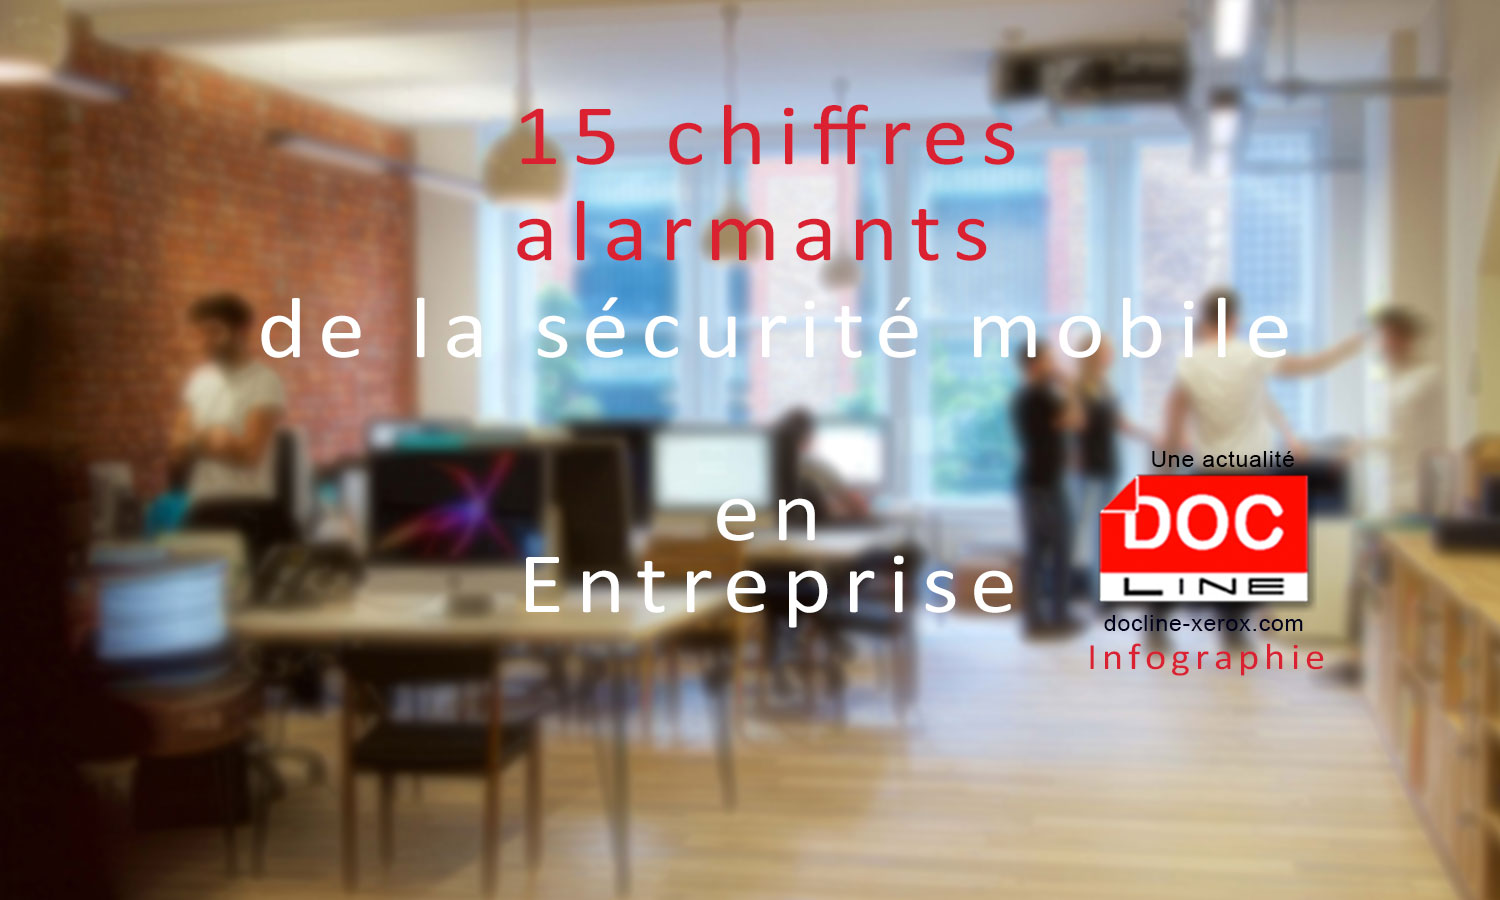 xerox docline solutions-docline-xerox-securite-mobile-entreprise